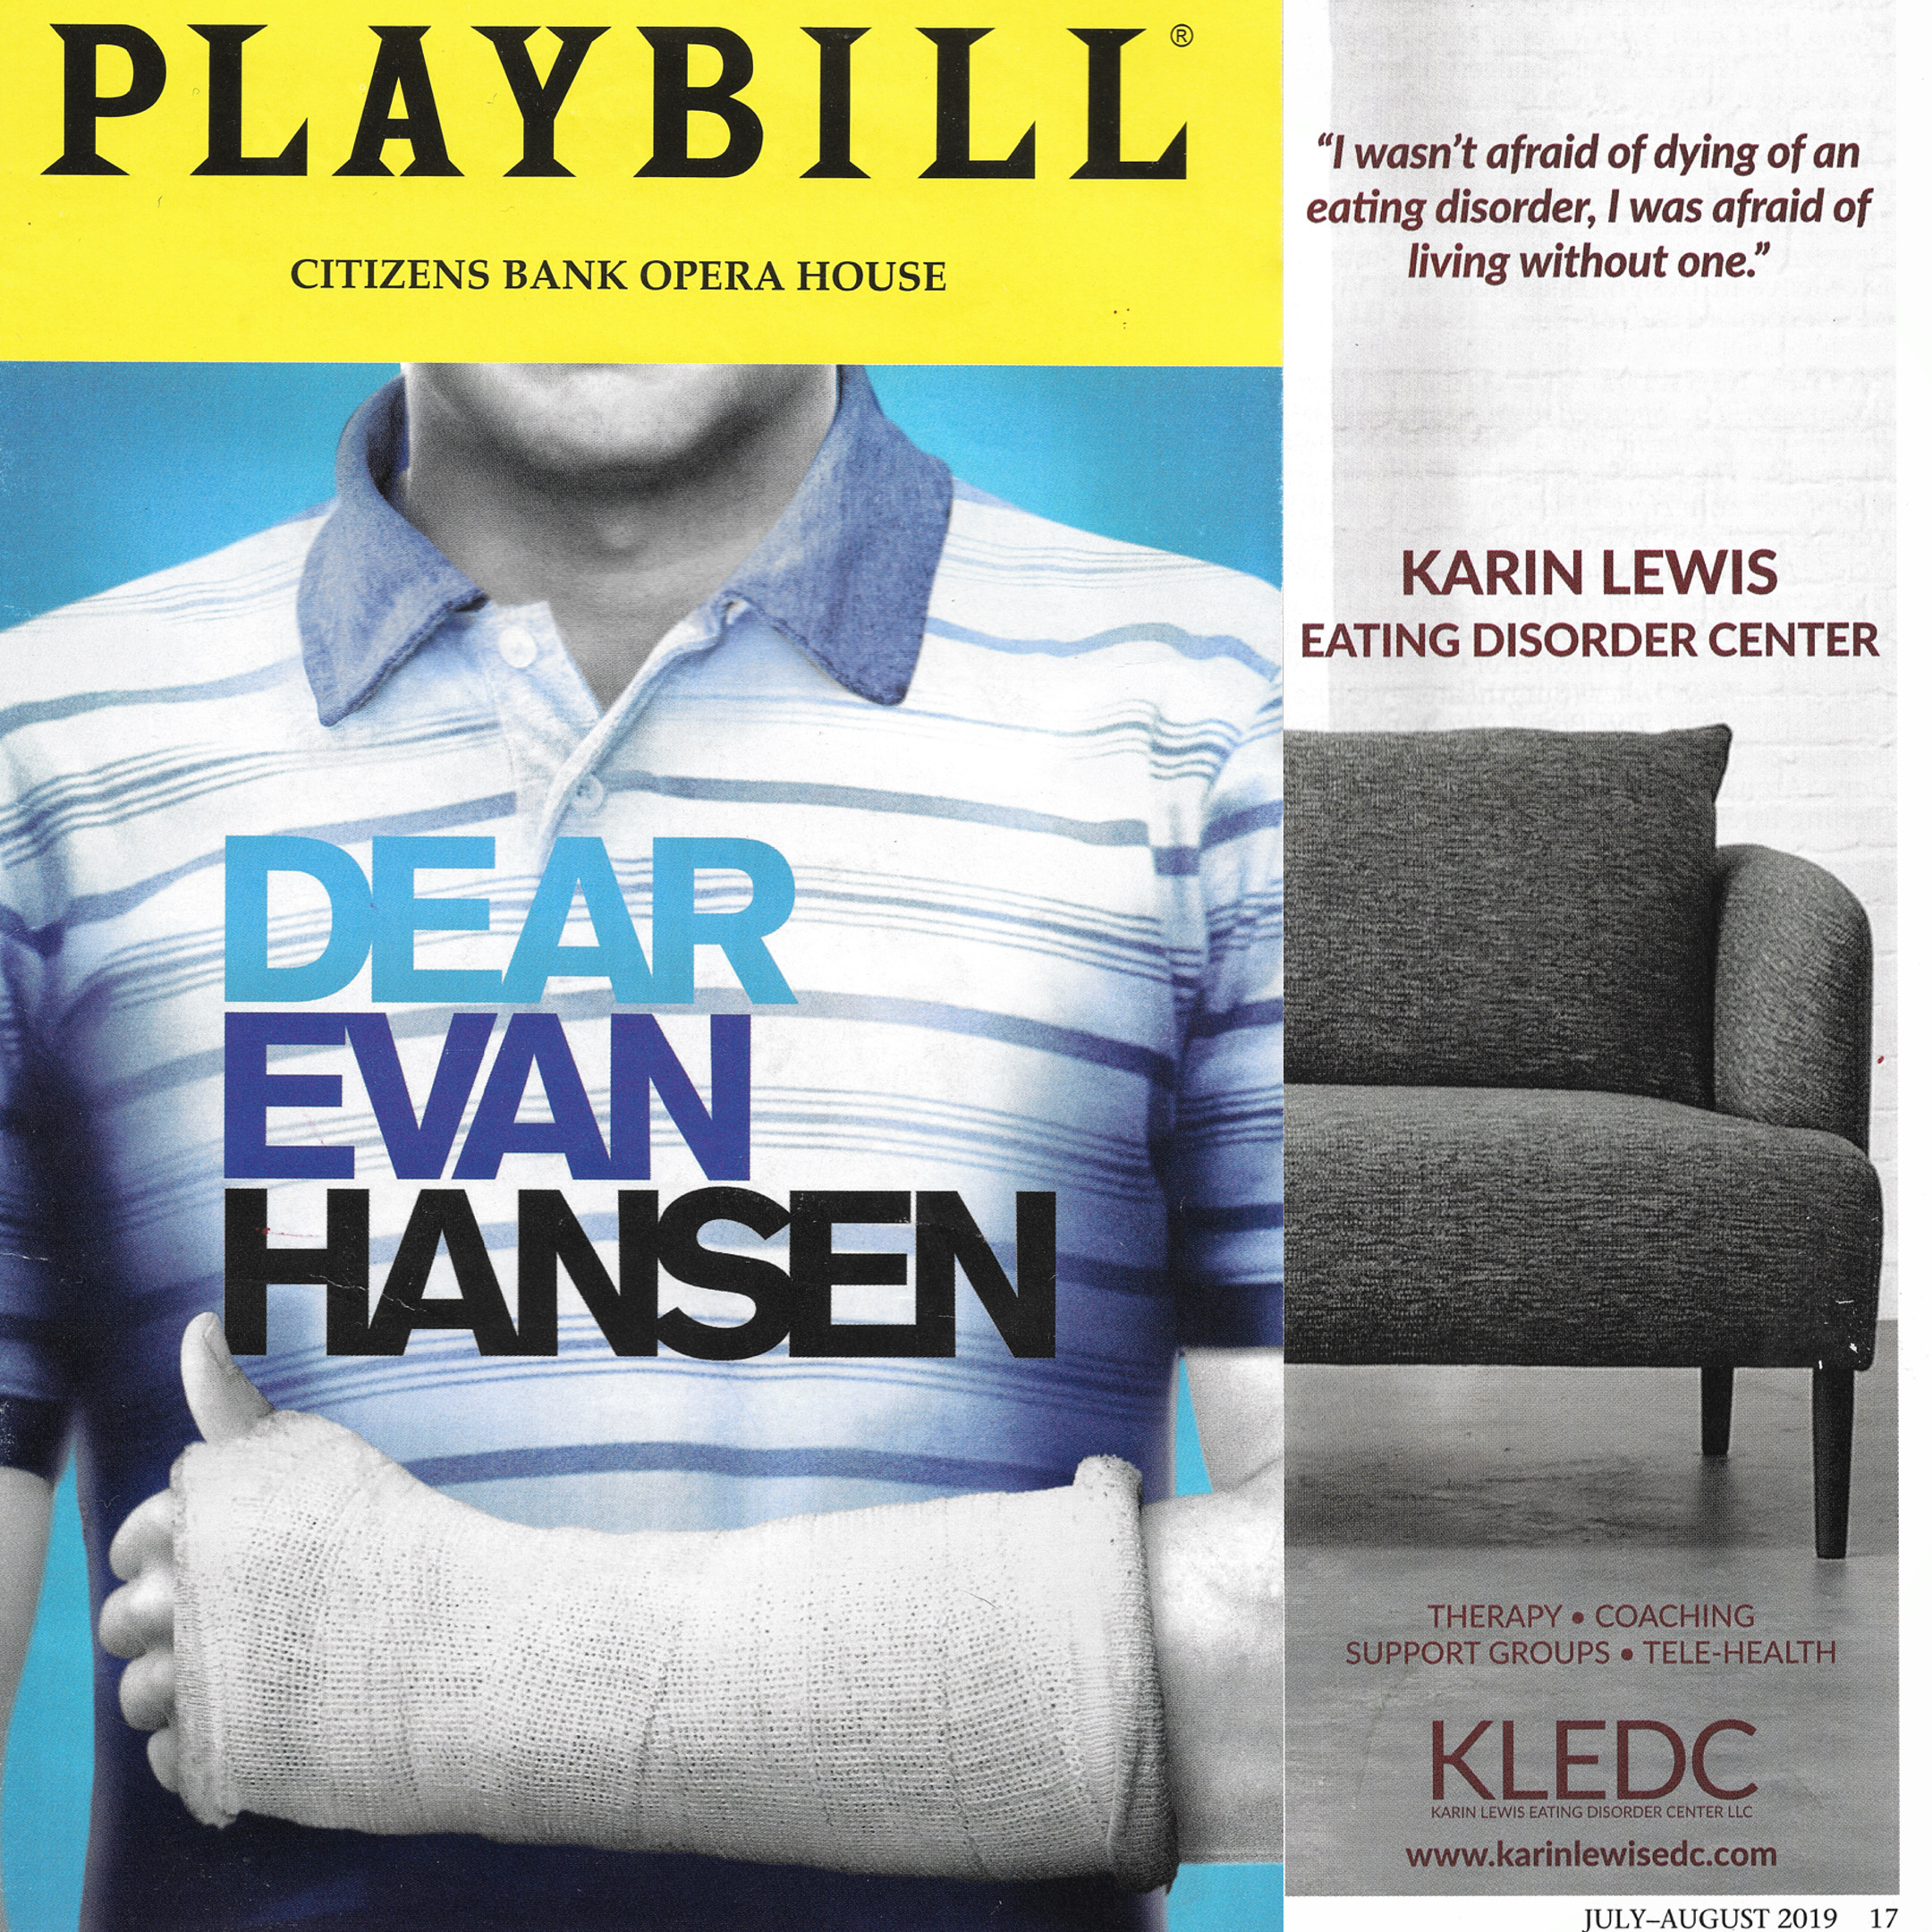 Dear Evan Hansen Playbill for the Boston Opera House run featuring the Karin Lewis Eating Disorder Center.